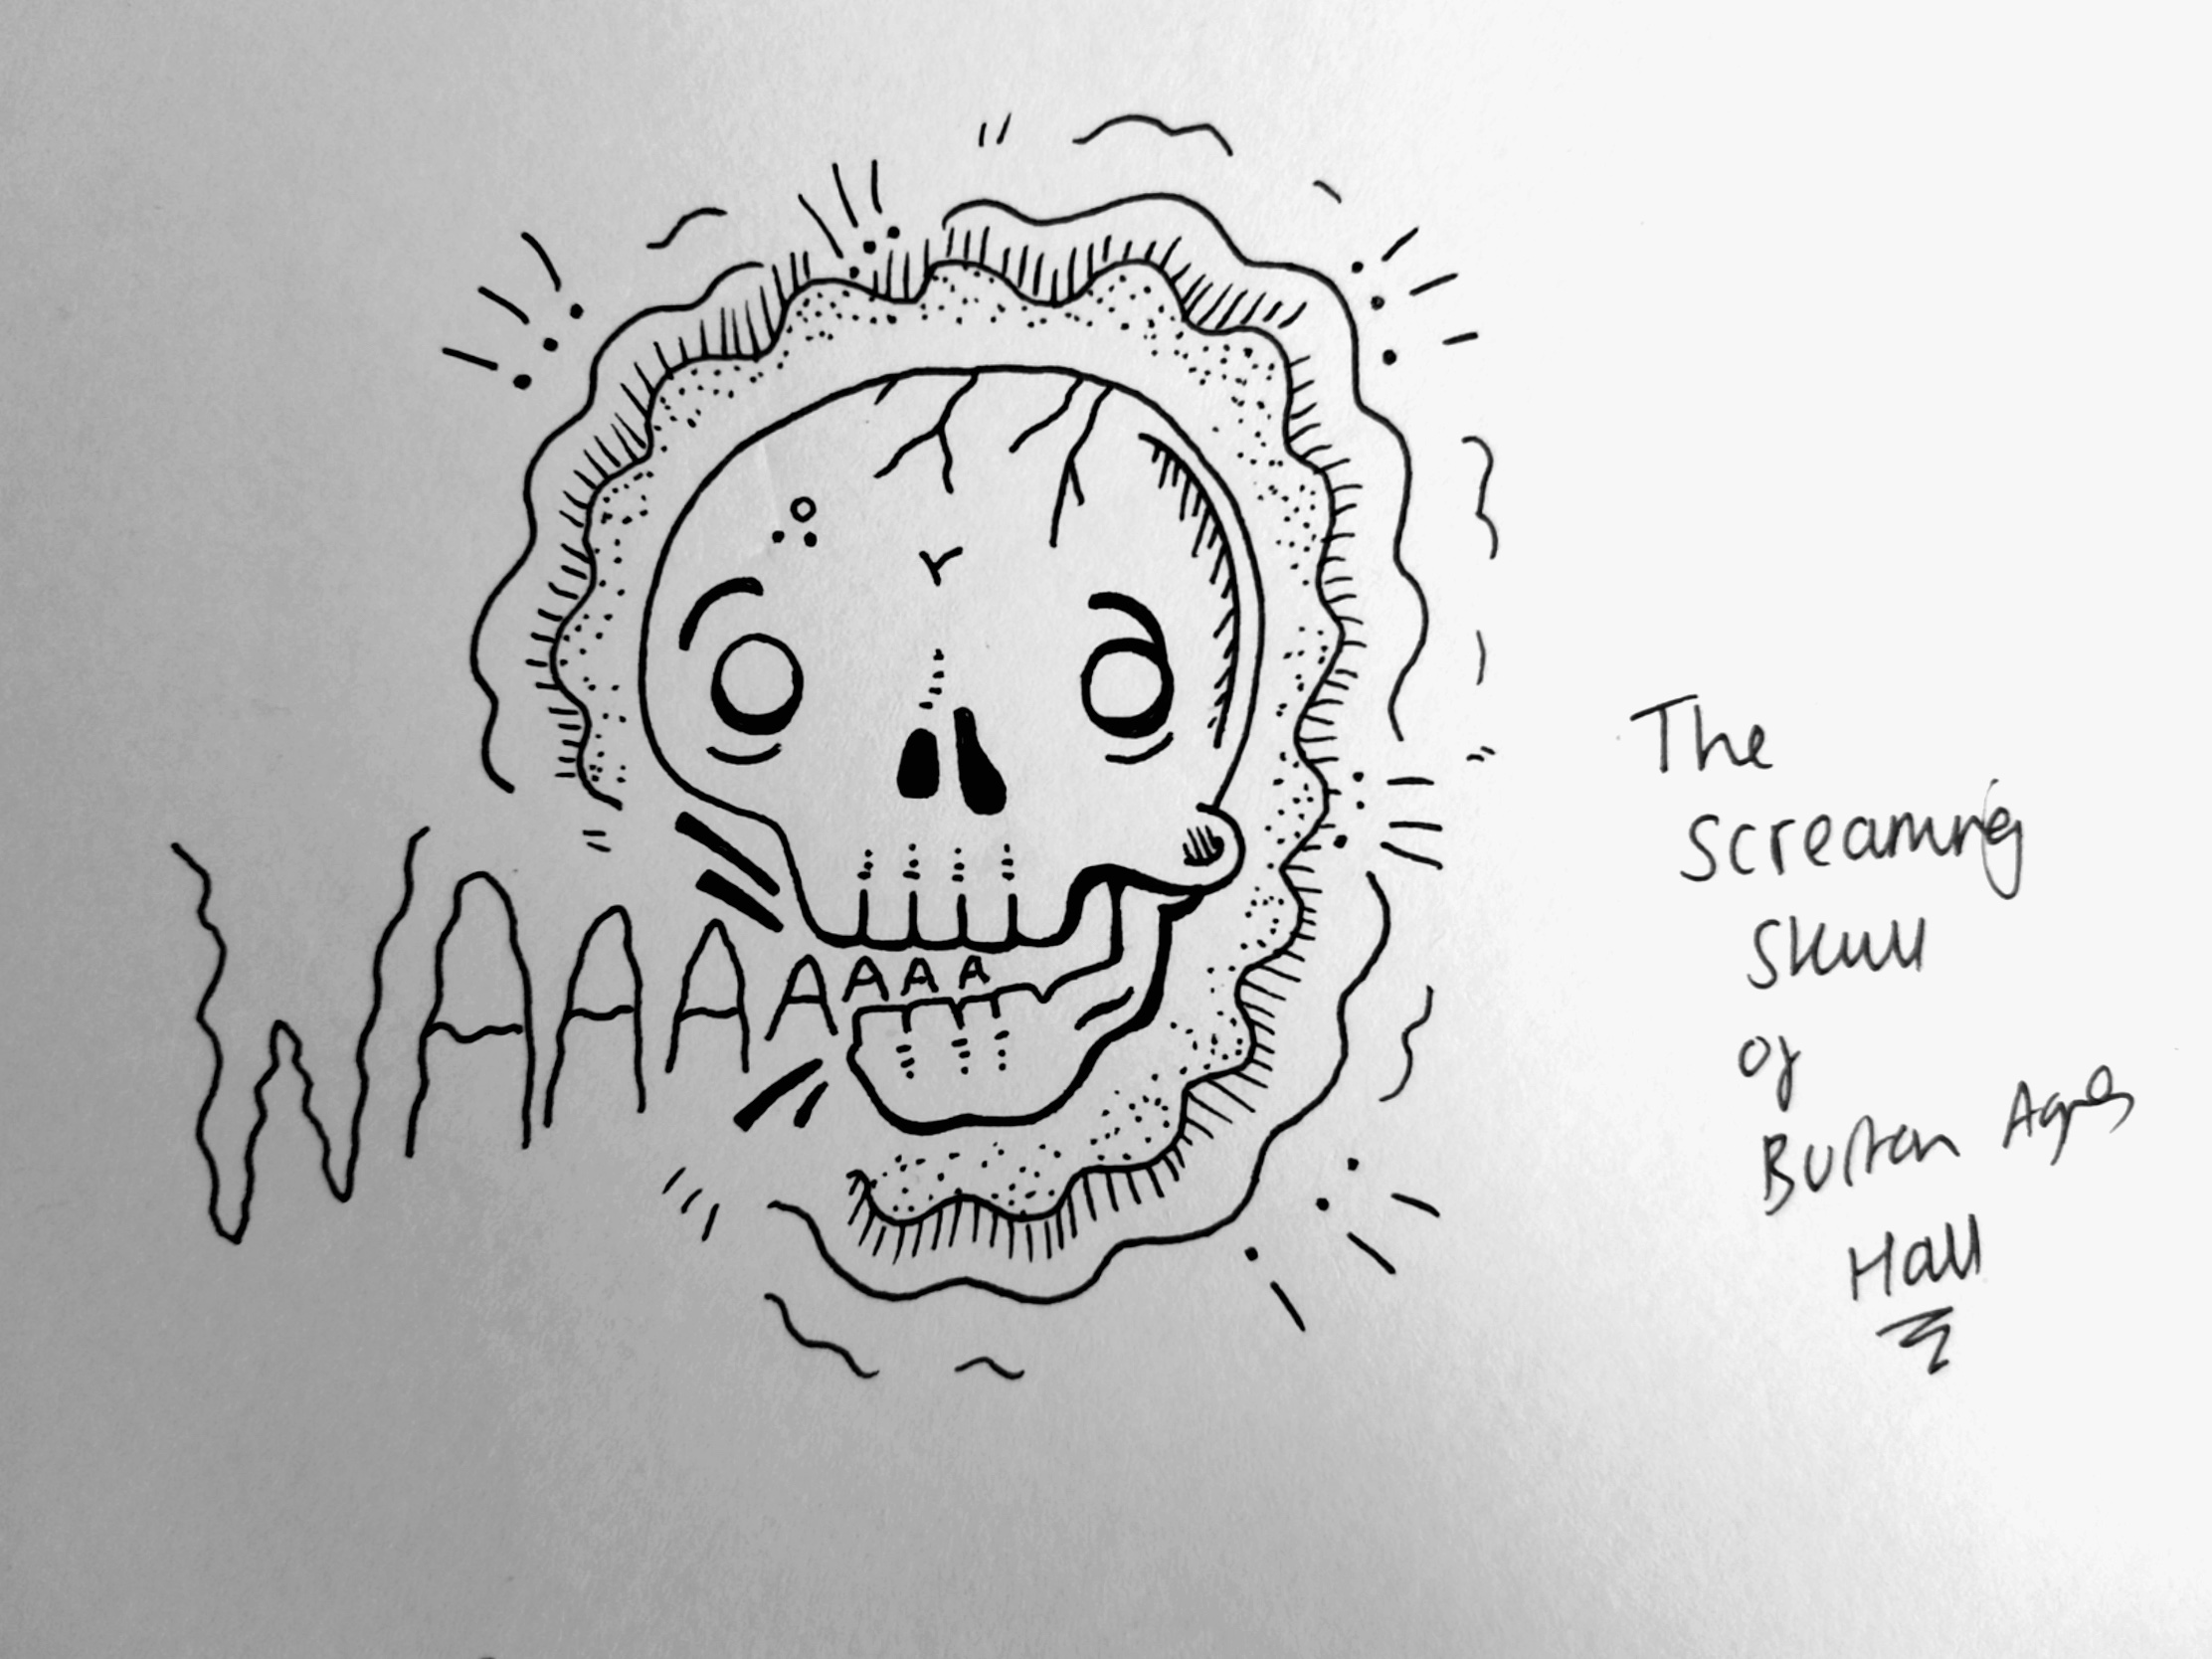 Illustrated Ghost Stories 2. The Screaming Skull of Burton Agnes Hall